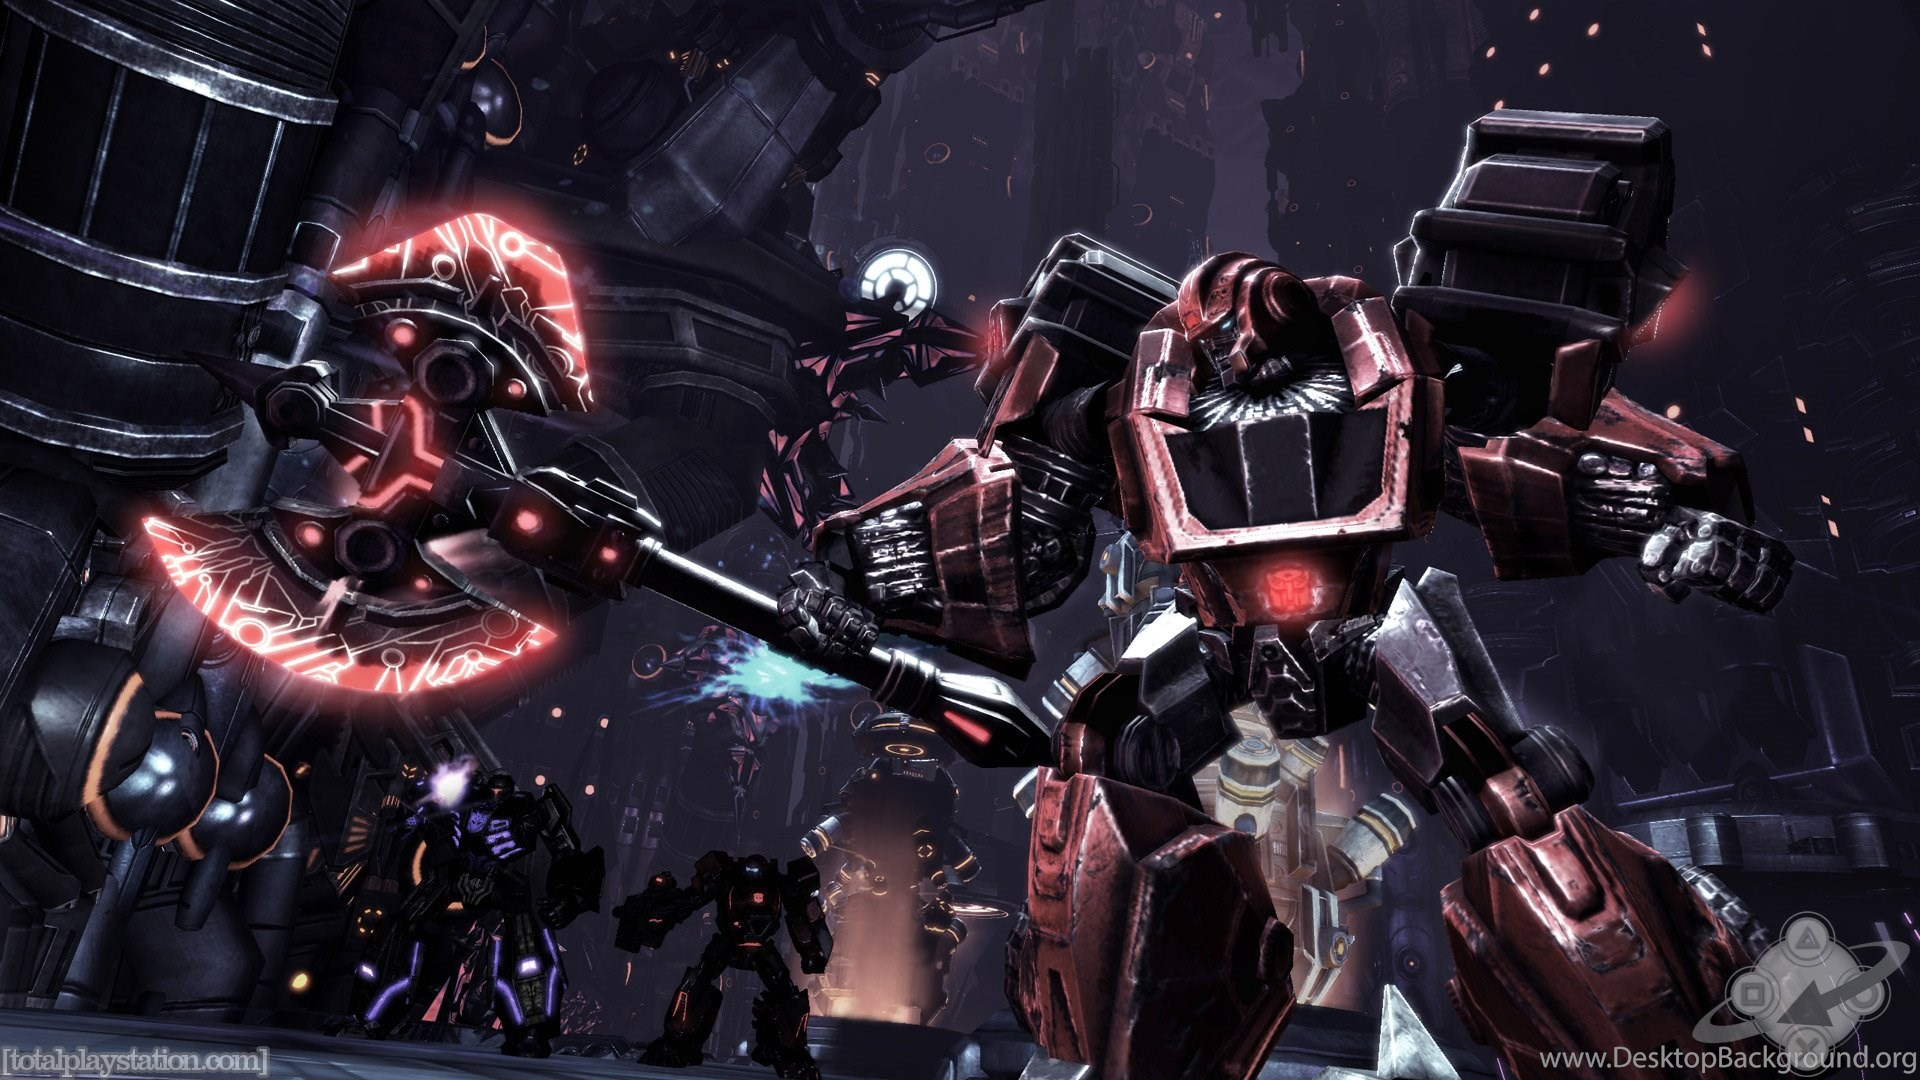 Wallpapers Soundwave Transformers War For Cybertron Images